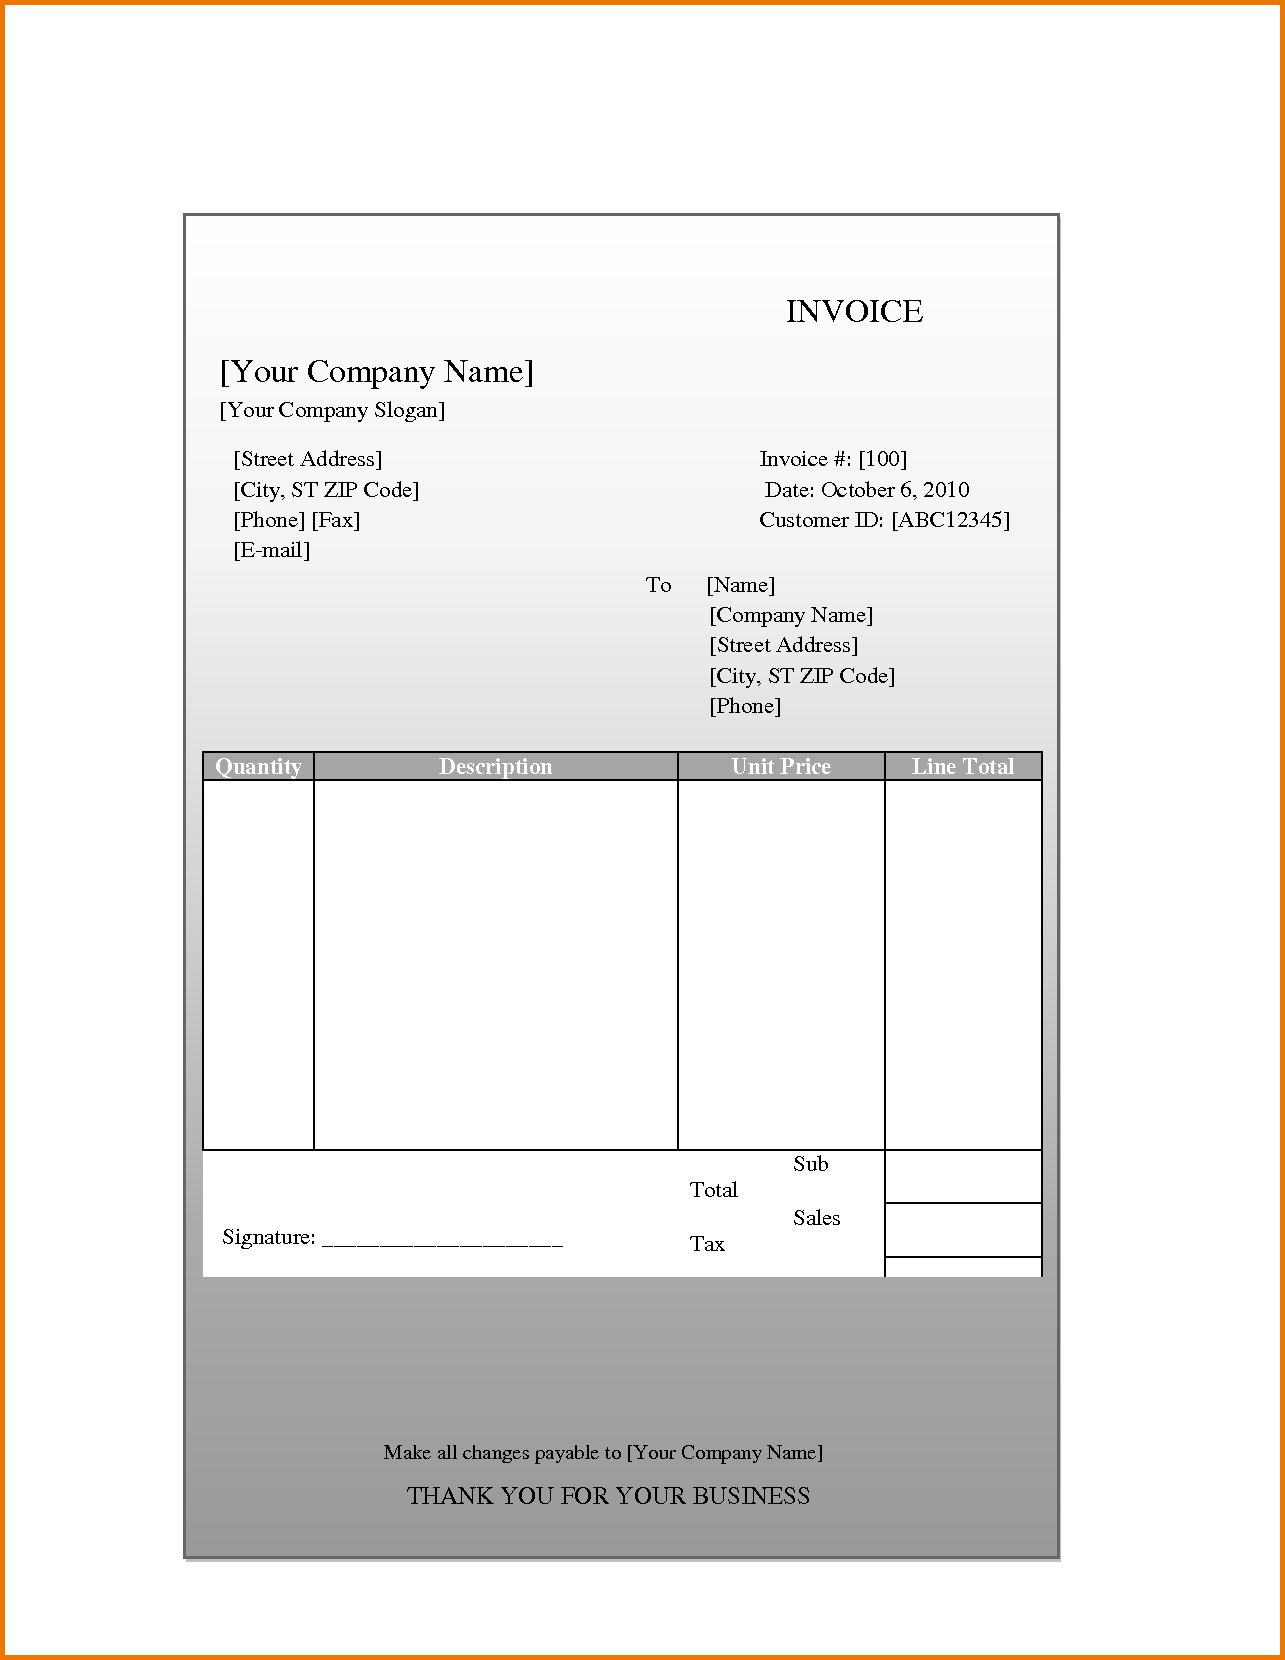 quickbooks invoice templates spreadsheet templates for busines quickbooks invoice template auto. Black Bedroom Furniture Sets. Home Design Ideas